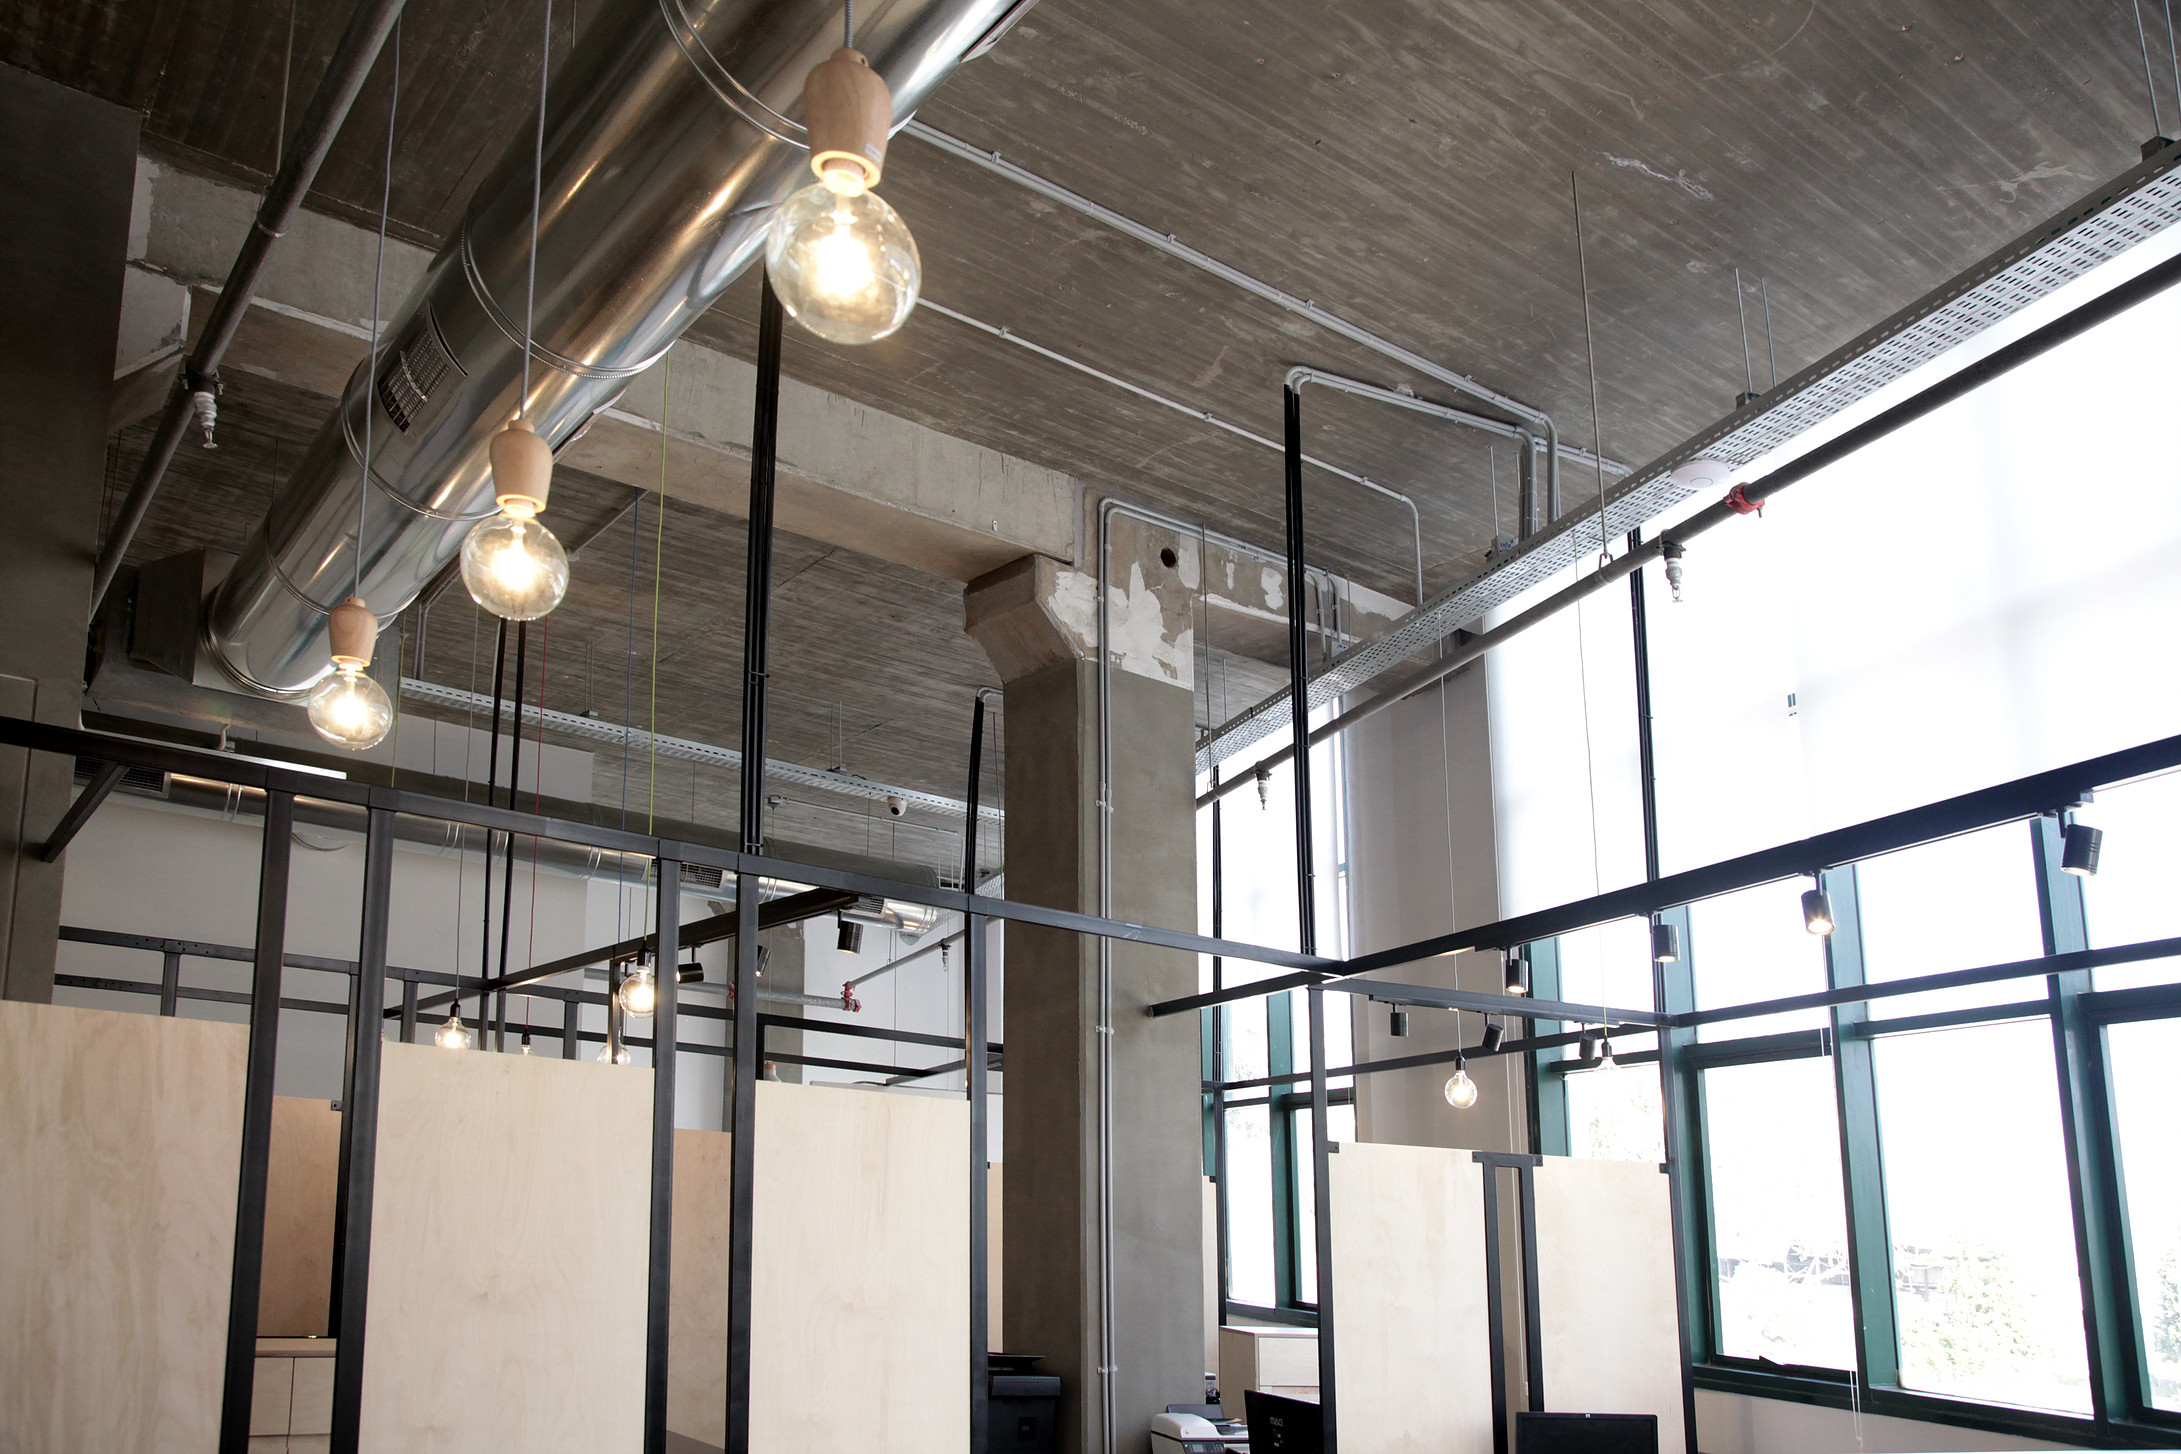 concrete ceiling. grid construction made of steel. wood dividers